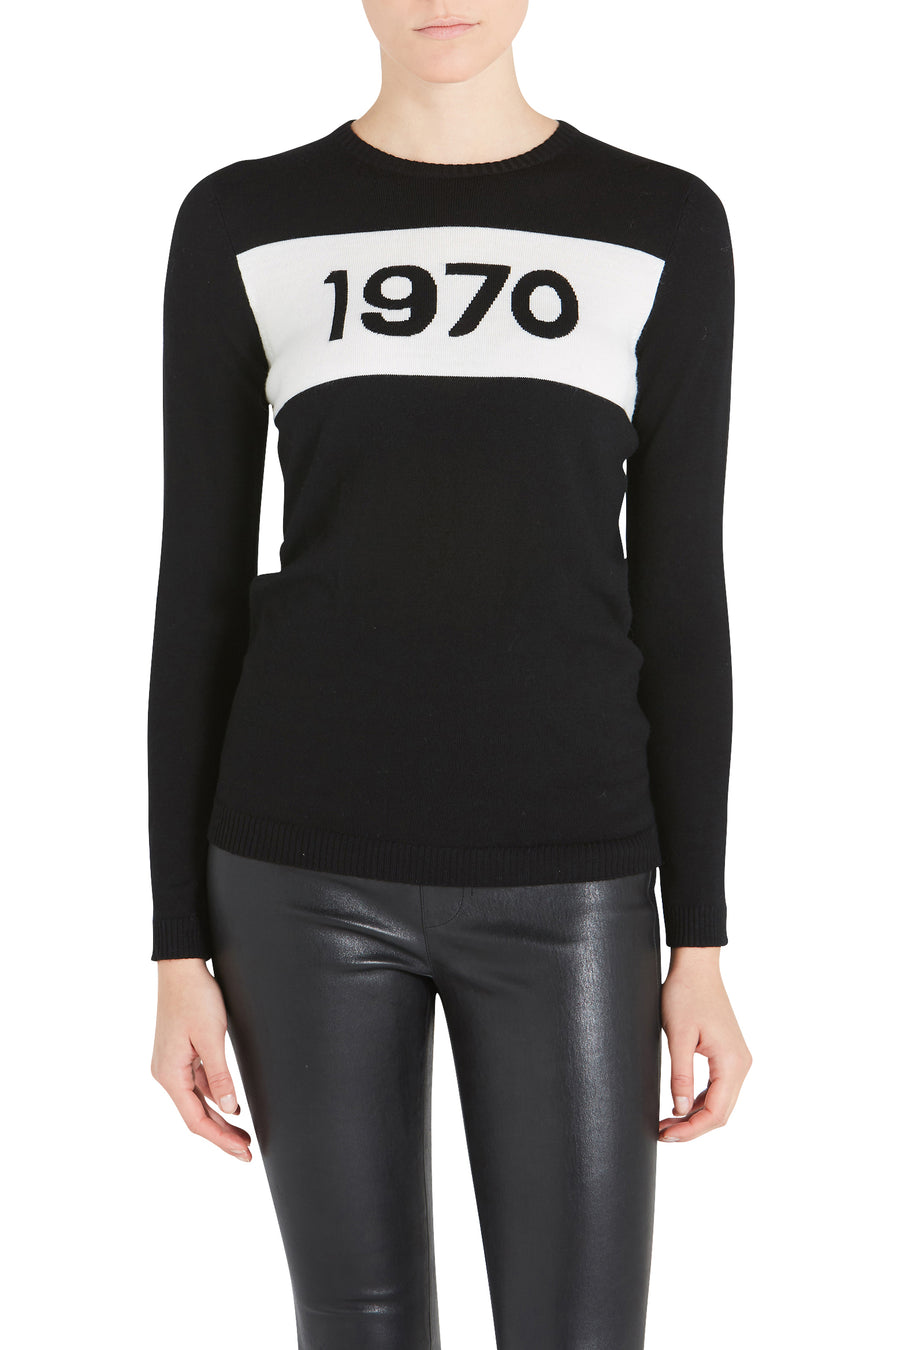 Bella Freud 1970 Jumper from The New Trend